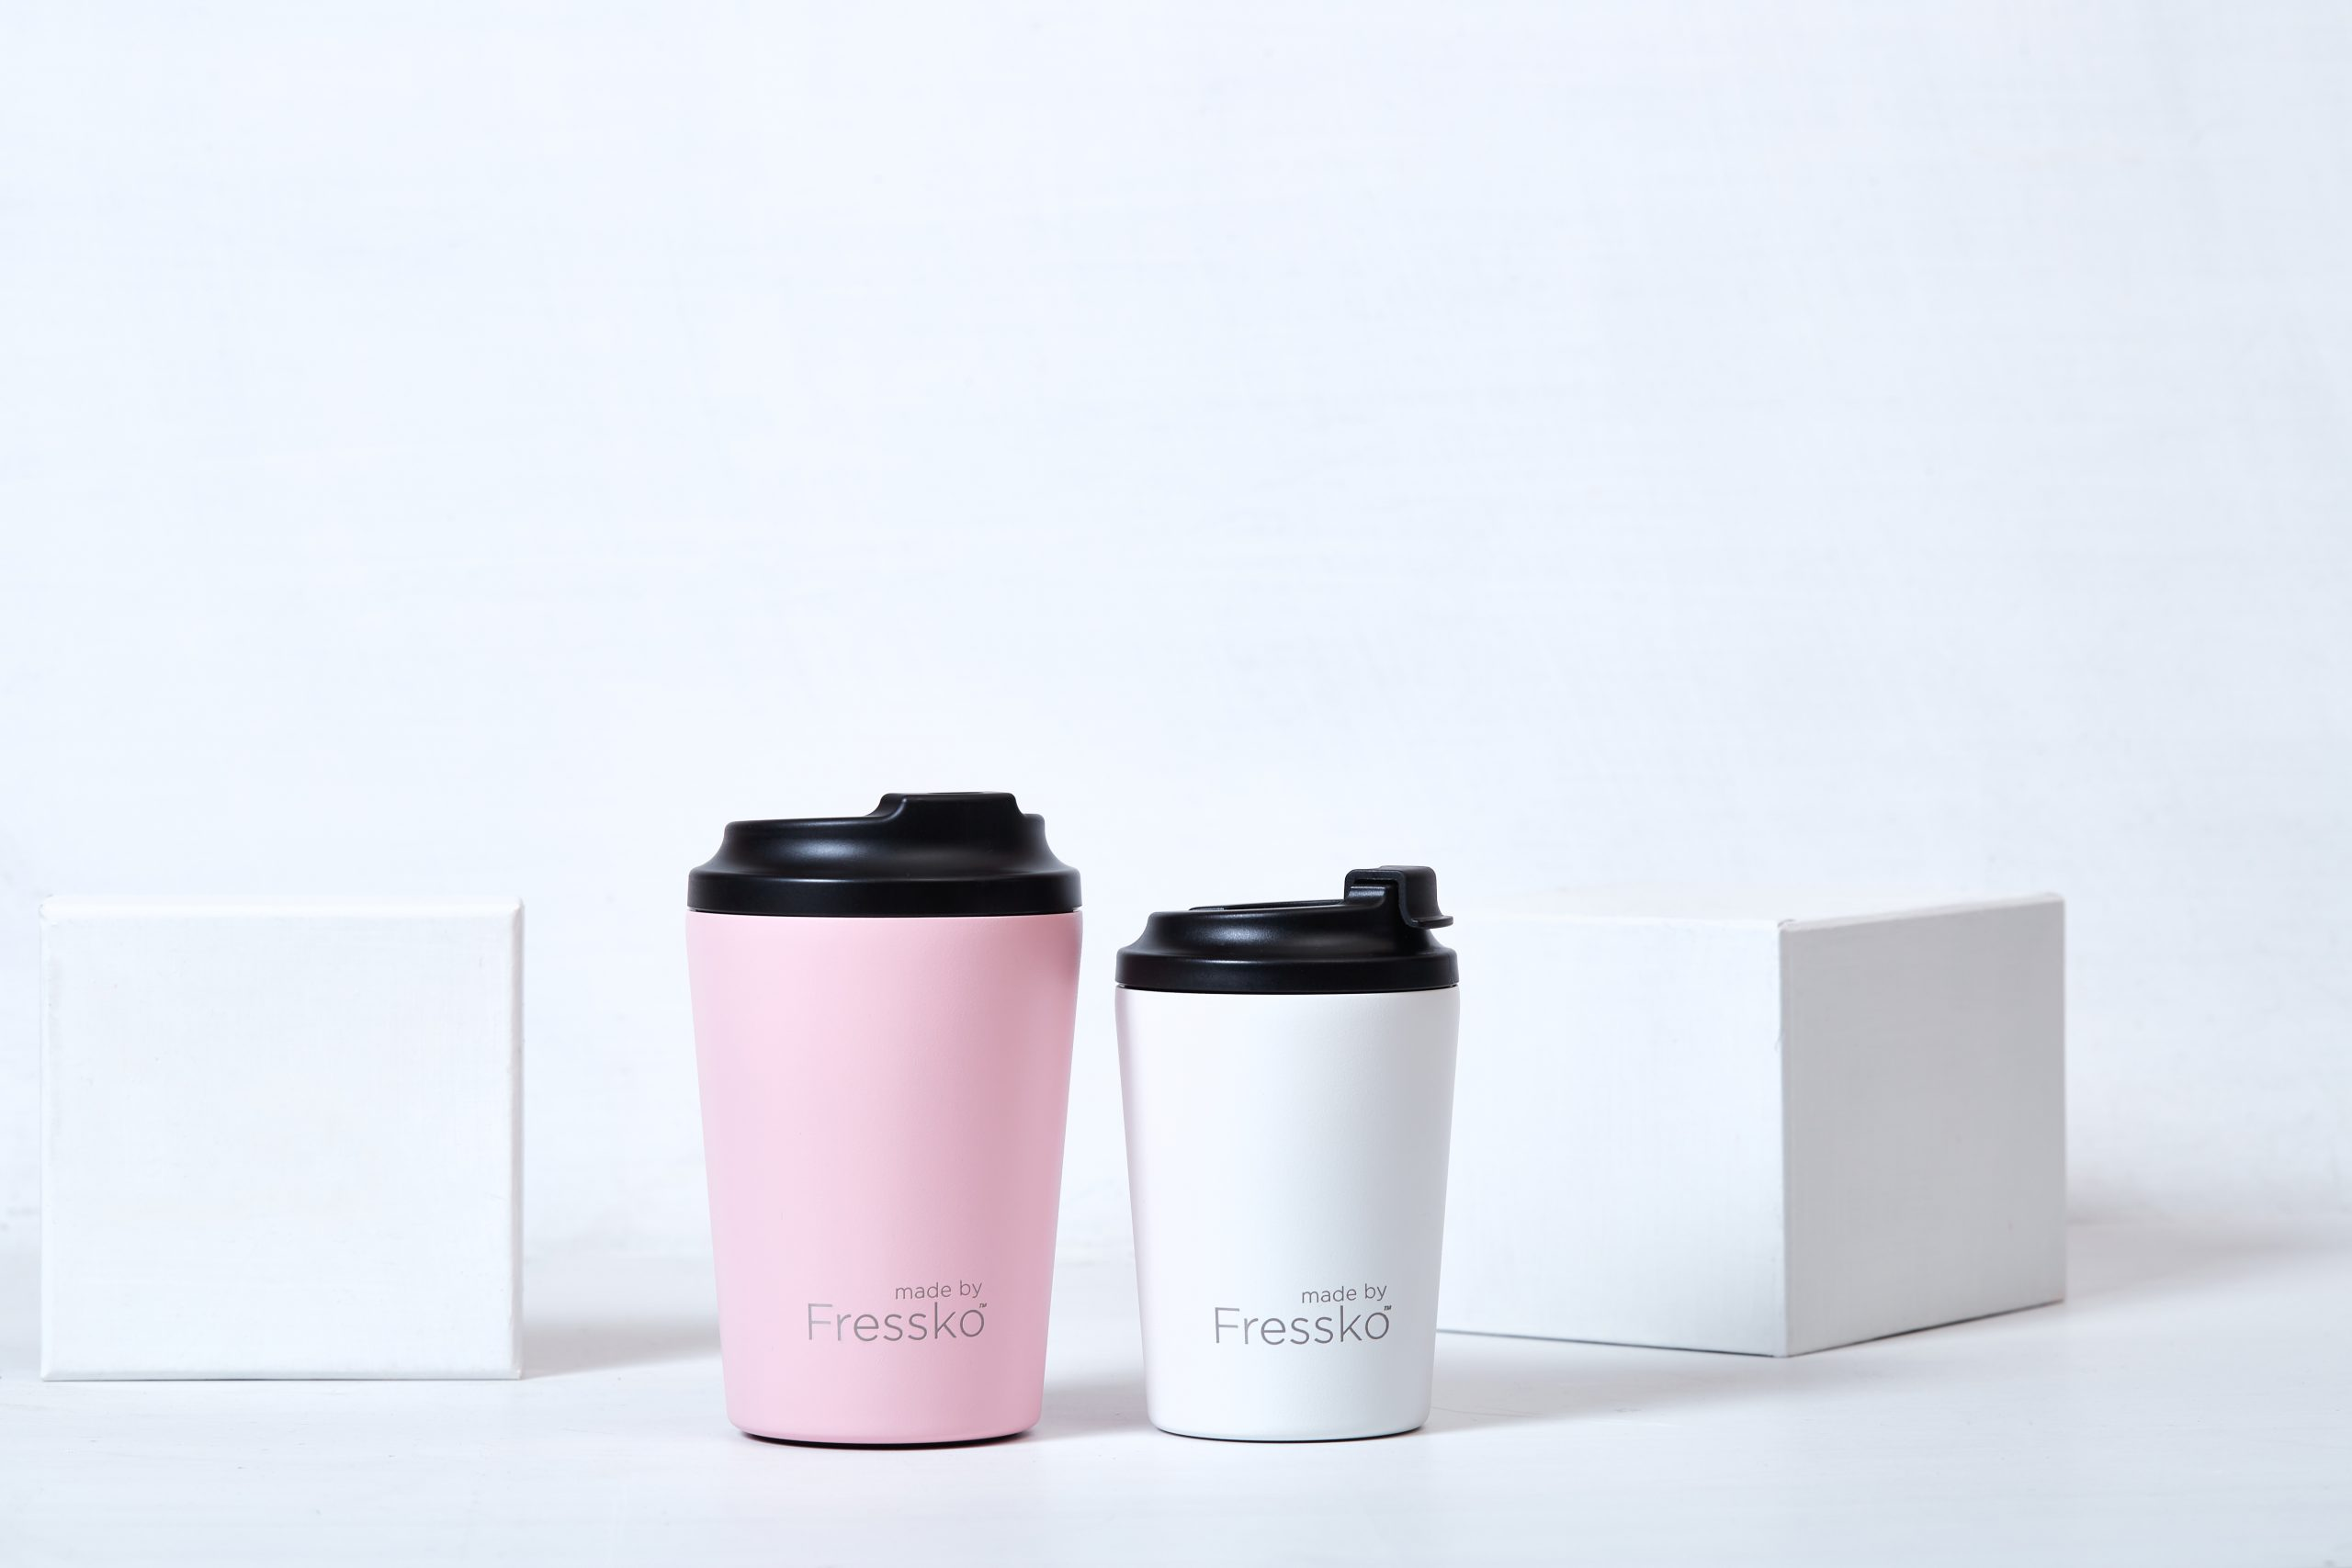 SAVE MOTHER EARTH WITH THESE STYLISH COFFEE CUPS